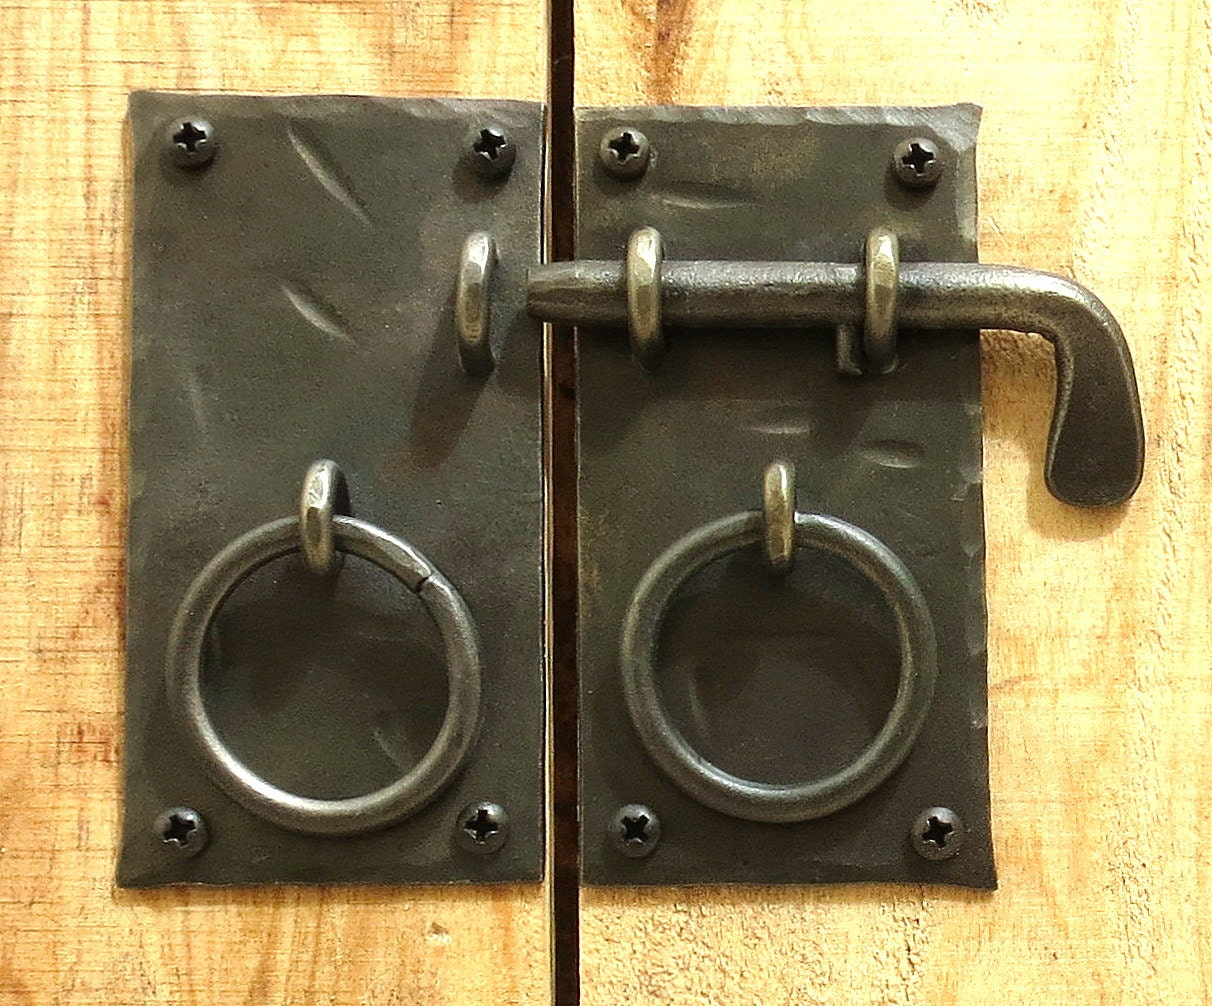 $14.49 - Square Cabinet Door Latch Pull Rings Slide Bolt Hand Forged Metal